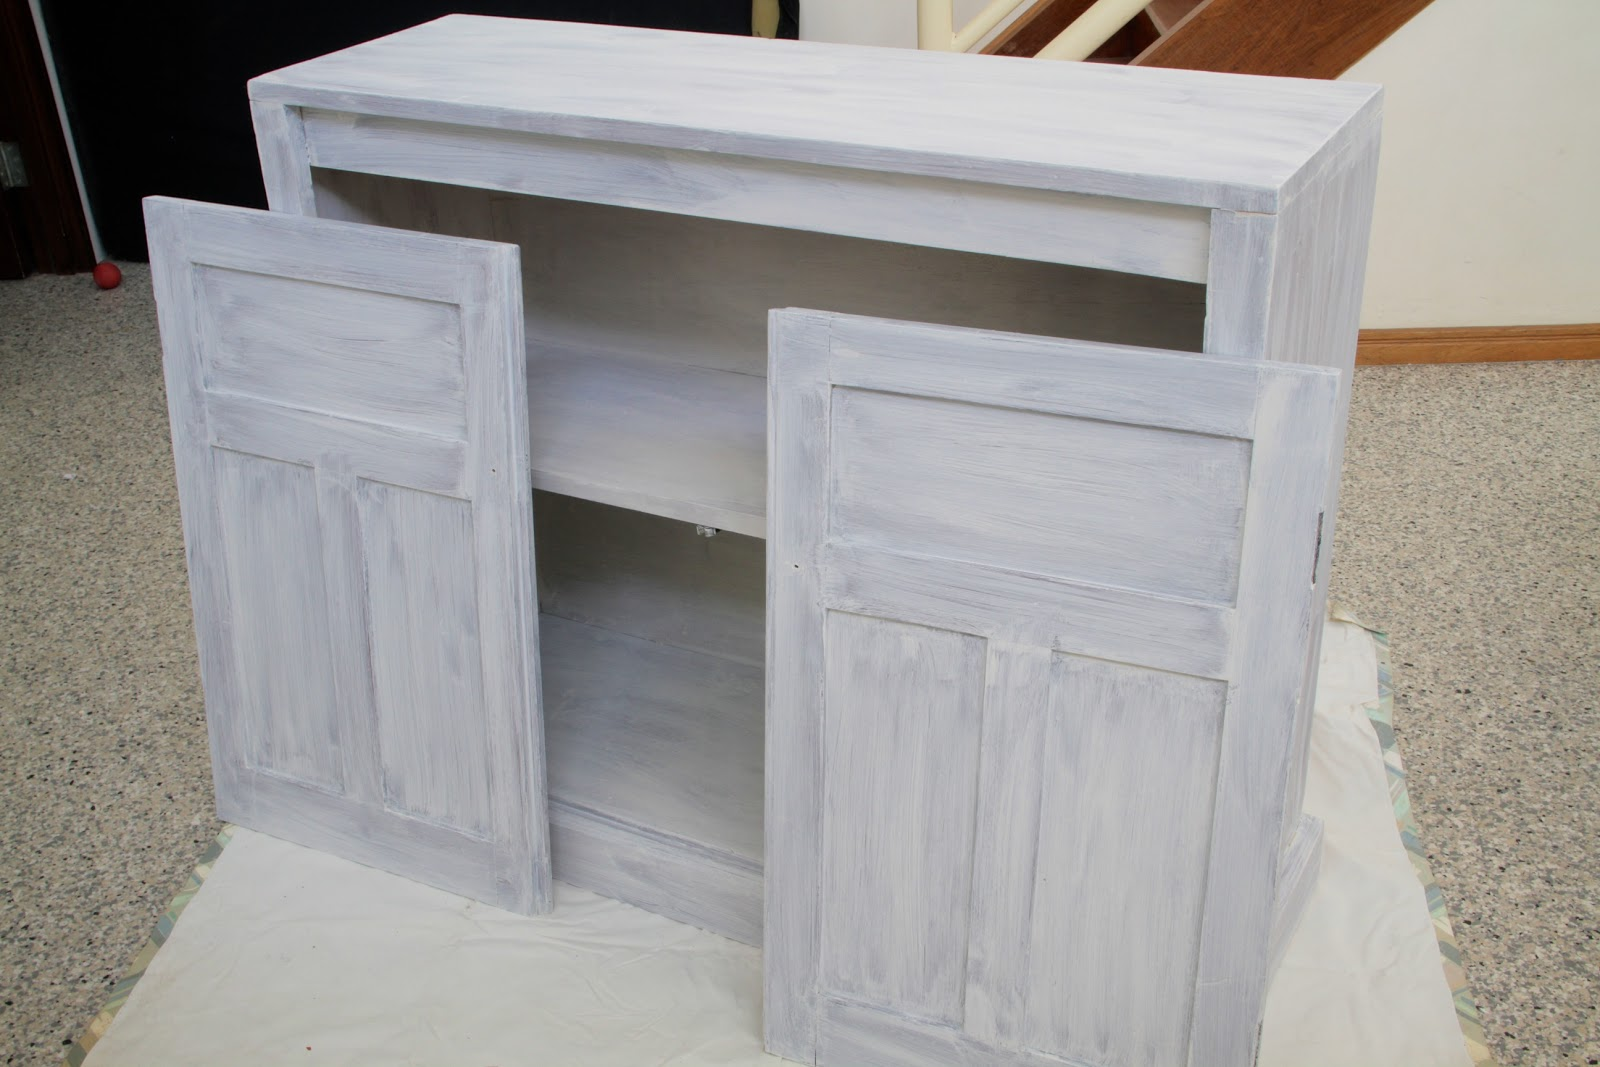 Paint for Shabby Chic Kitchen Cupboards